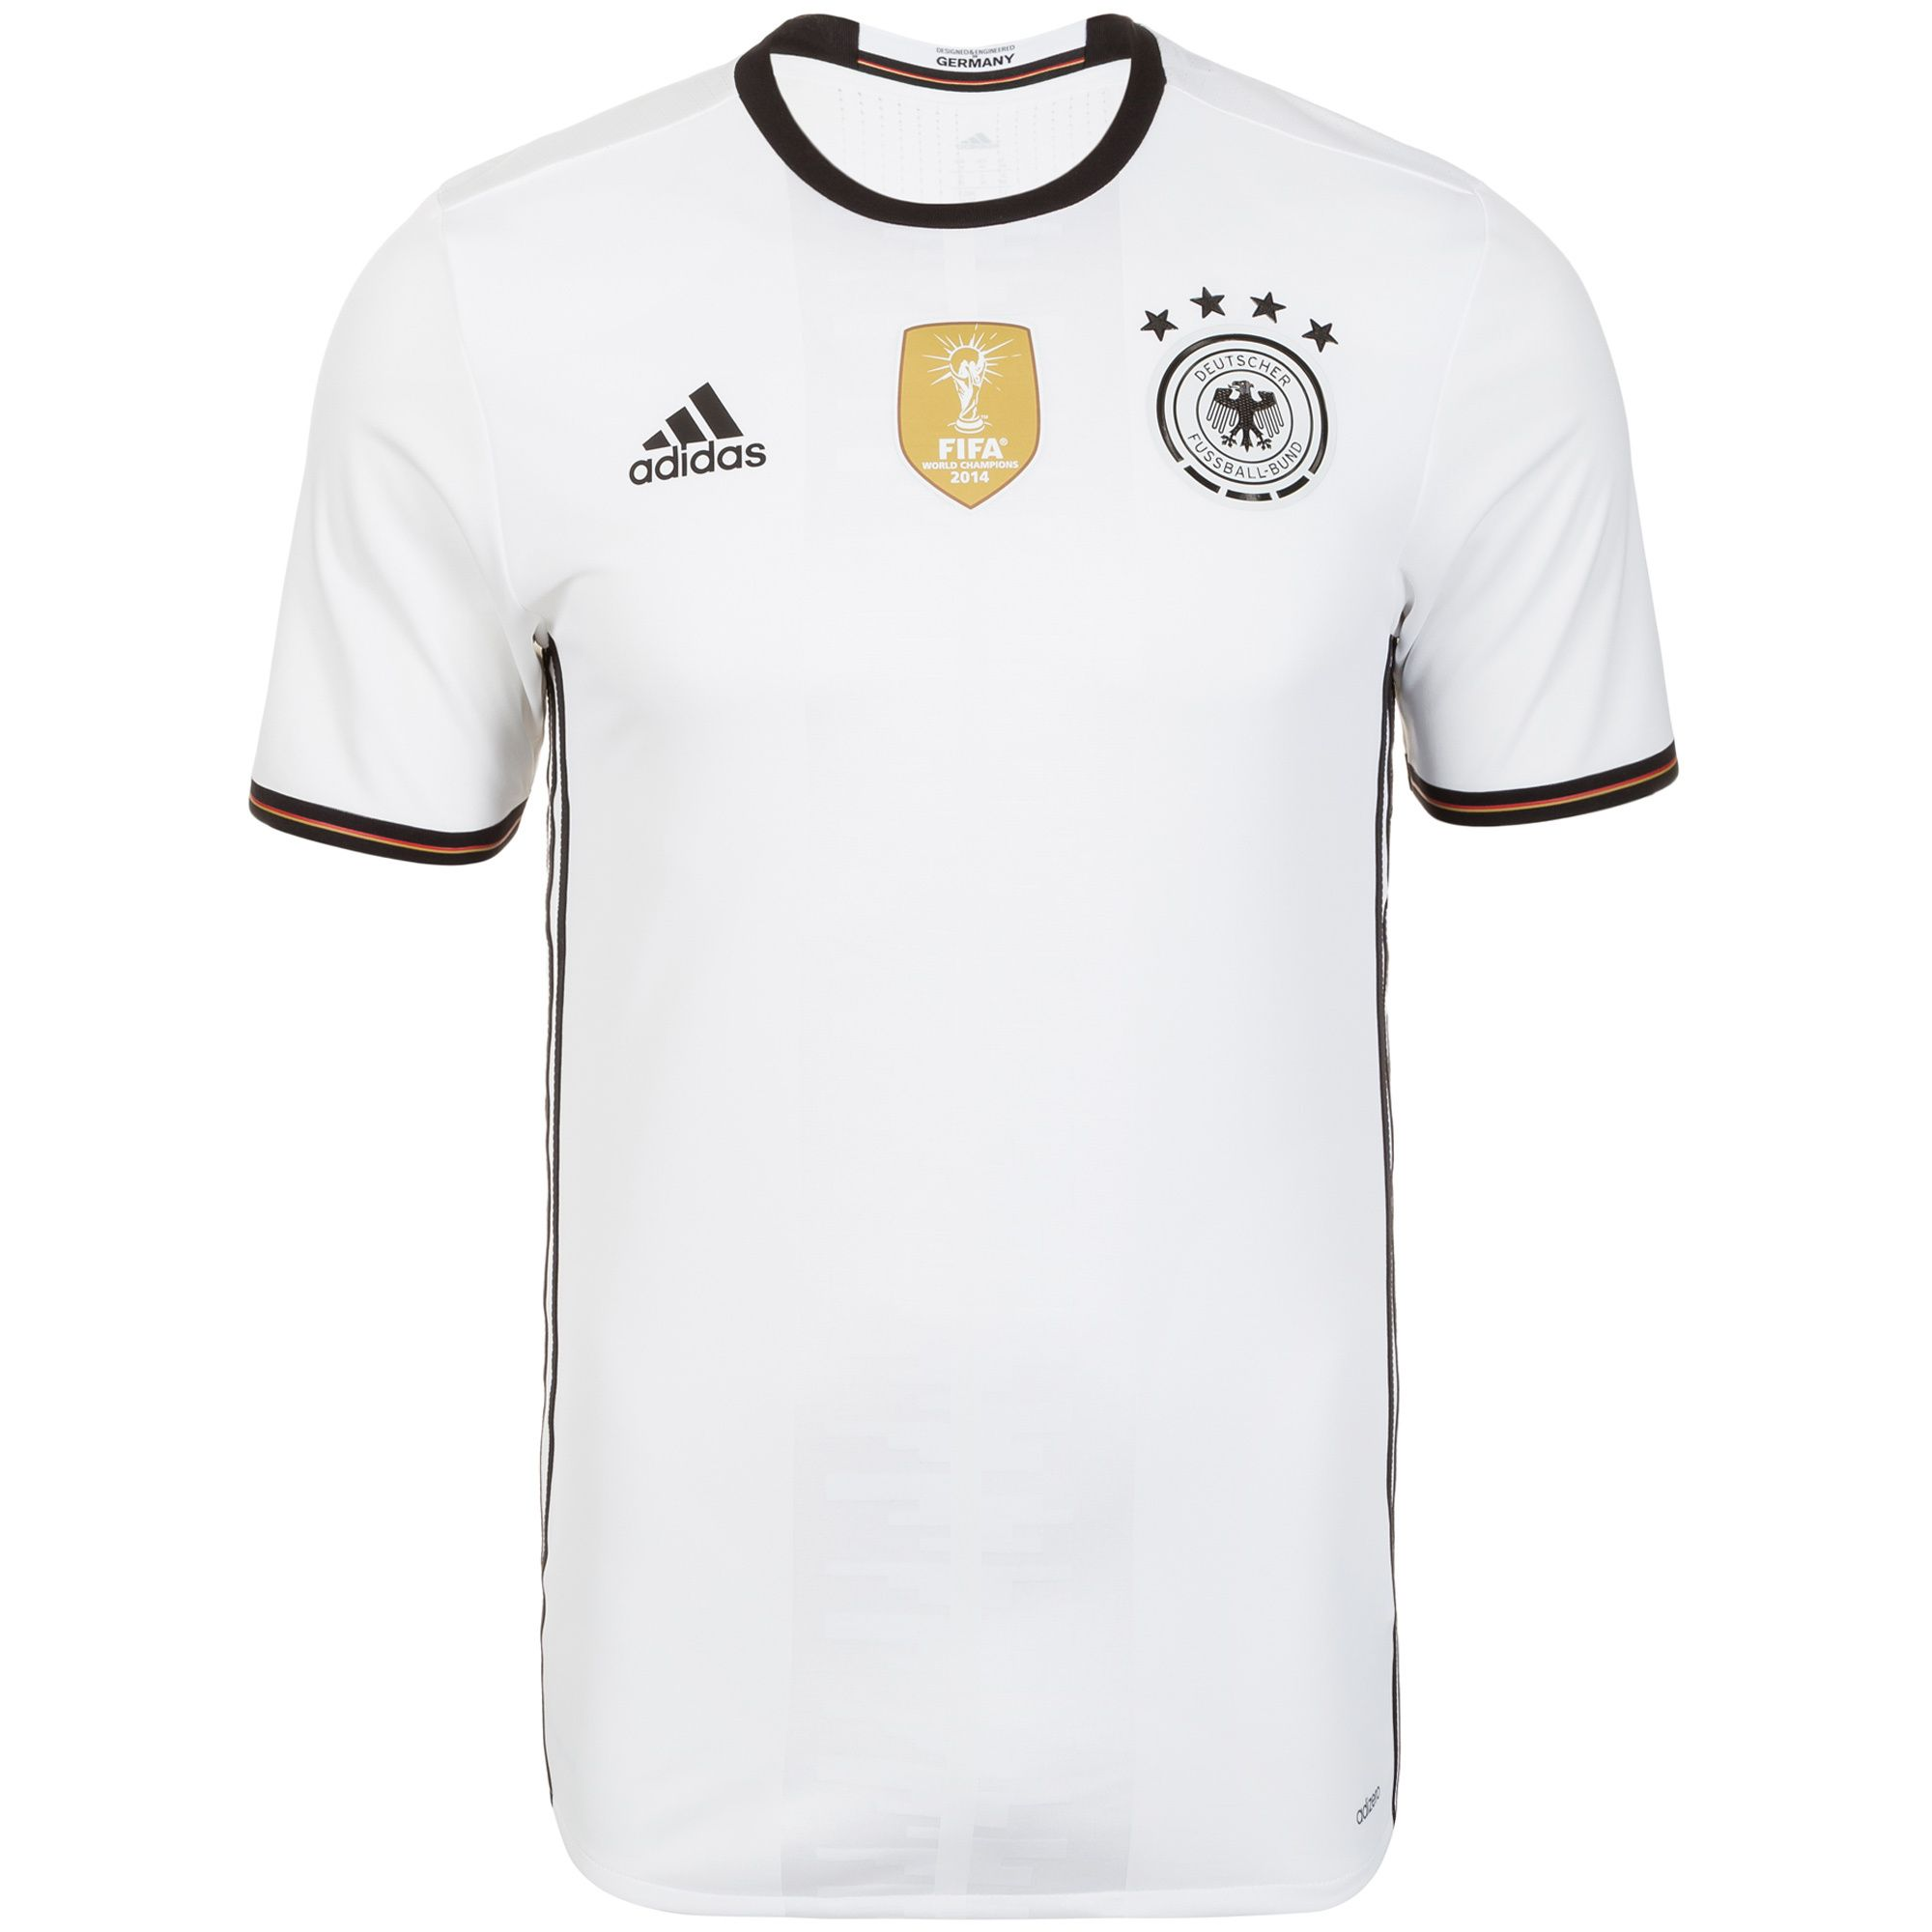 ADIDAS PERFORMANCE adidas Performance DFB Authentic Trikot Home EM 2016 Herren